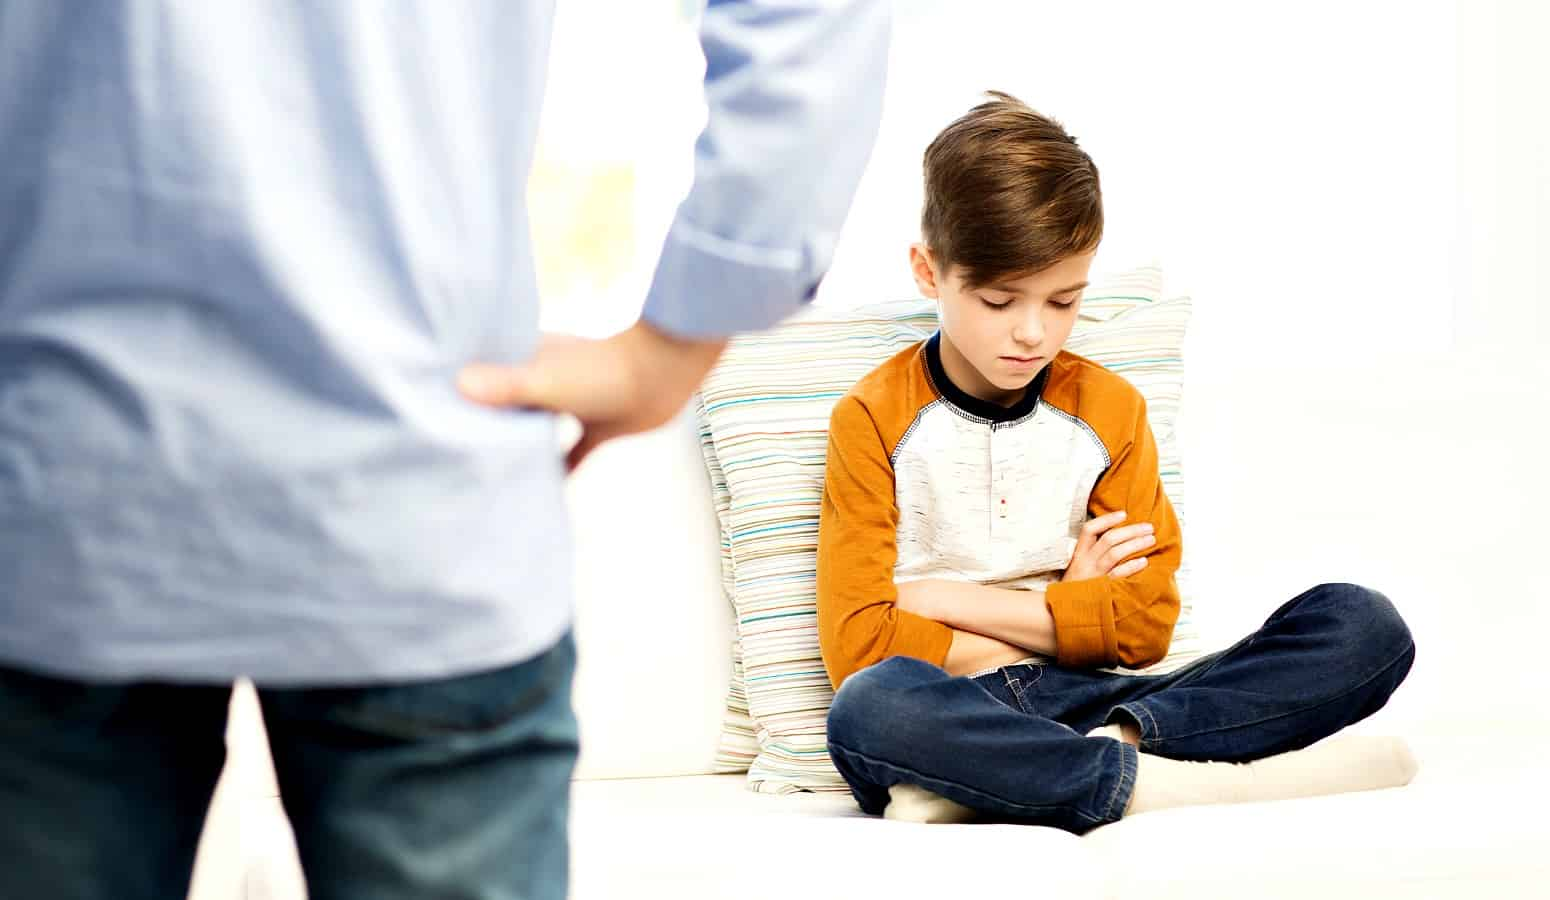 Little boy in orange shirt pouting with dad because of consequences for bad behavior